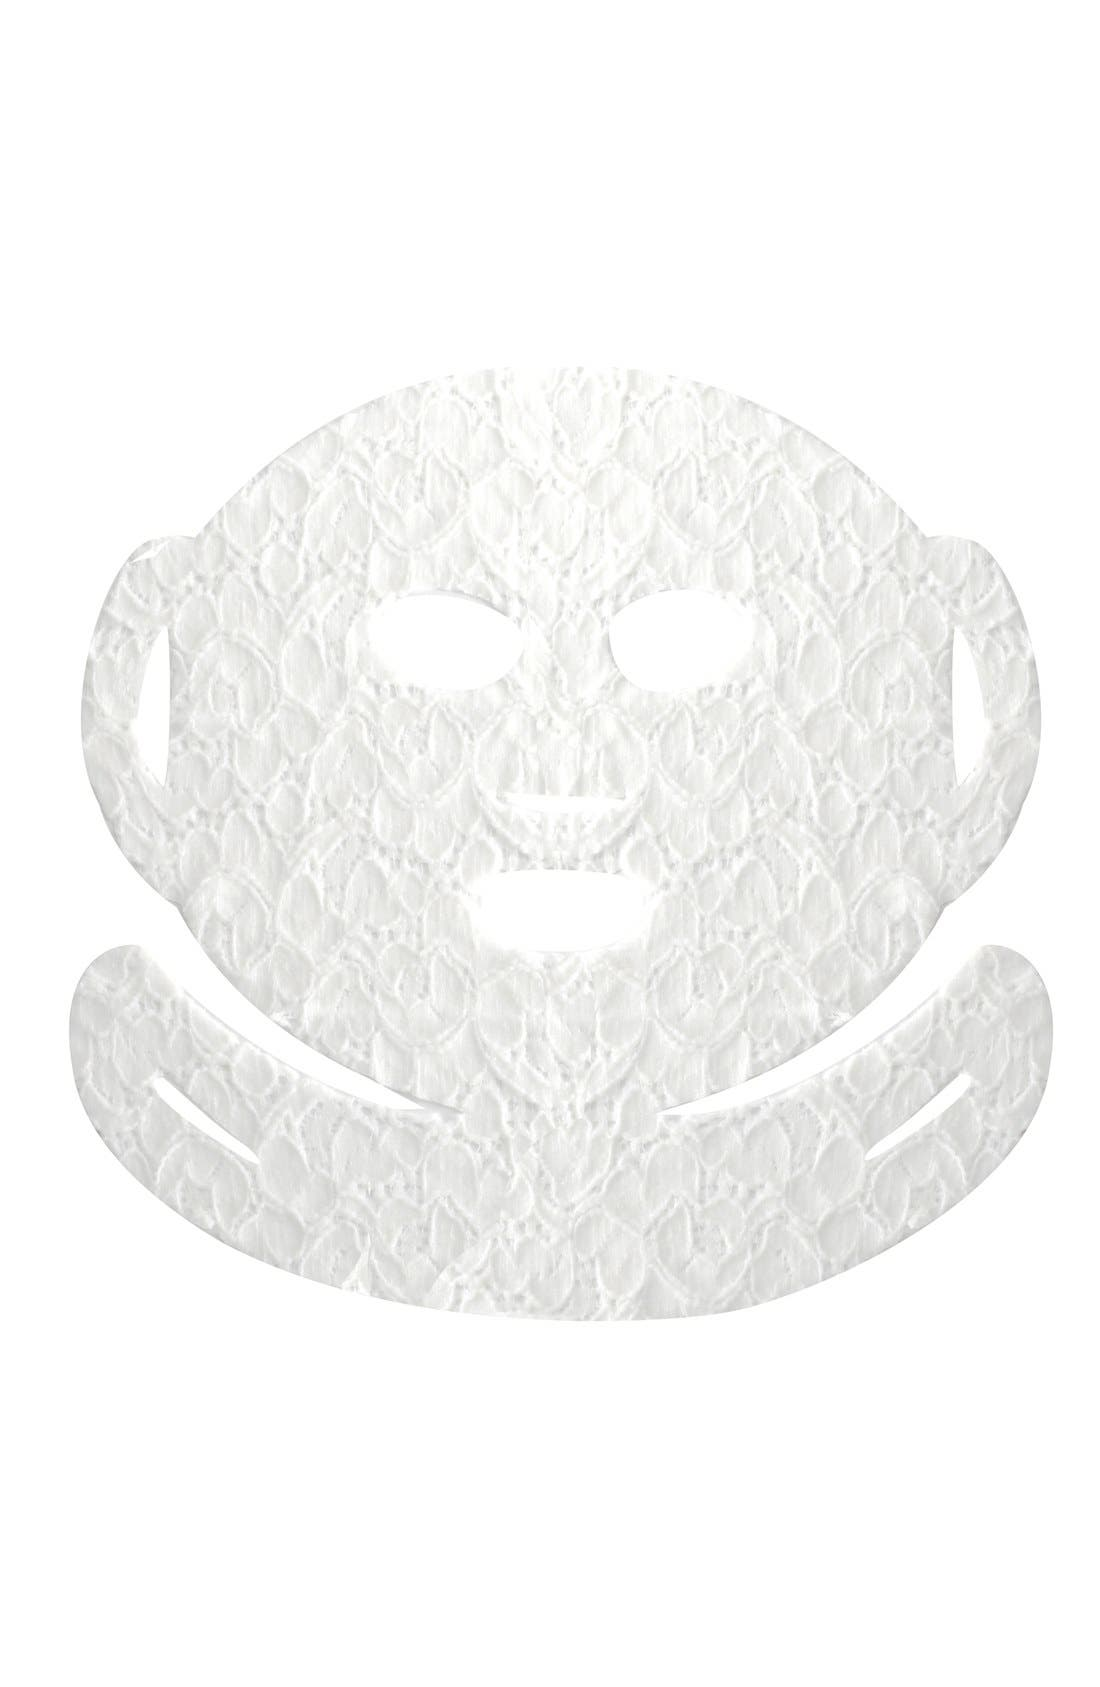 Lace Your Face Clarifying Mulberry Leaf Compression Facial Mask,                             Alternate thumbnail 4, color,                             NONE